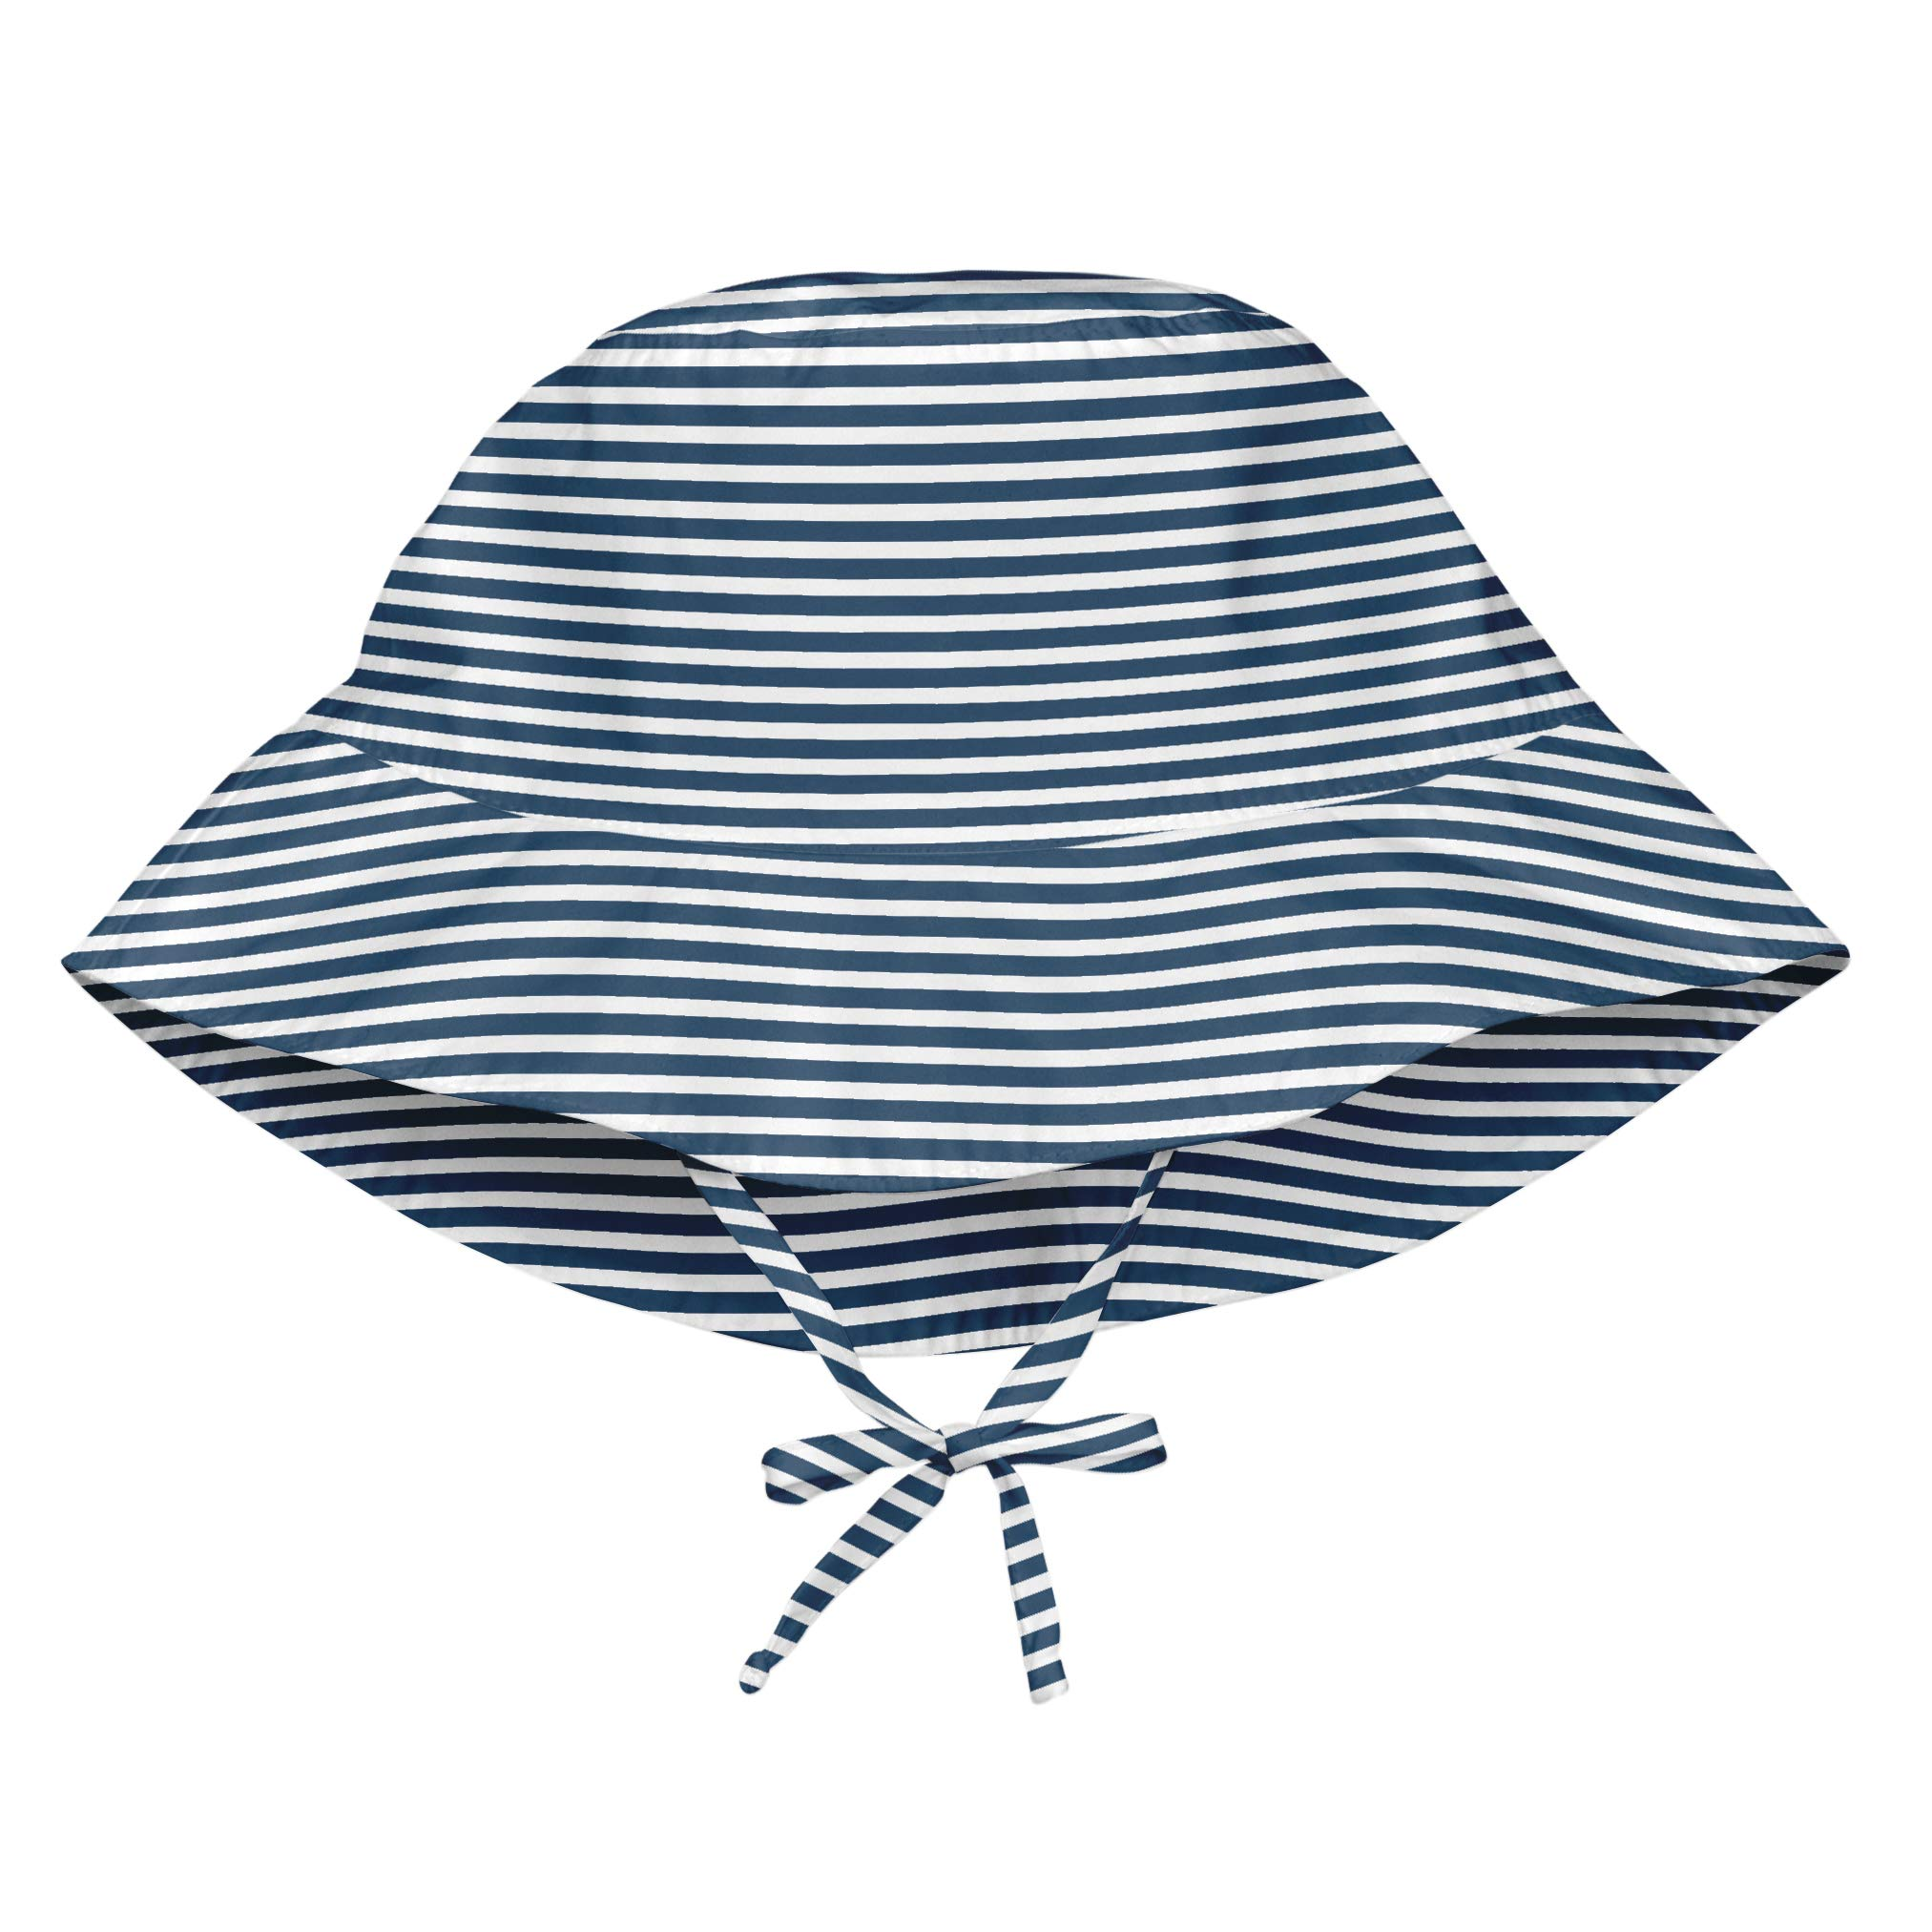 i play. Girls' Toddler Bucket Sun Protection Hat Navy Pinstripe 2T-4T, 2T/4T